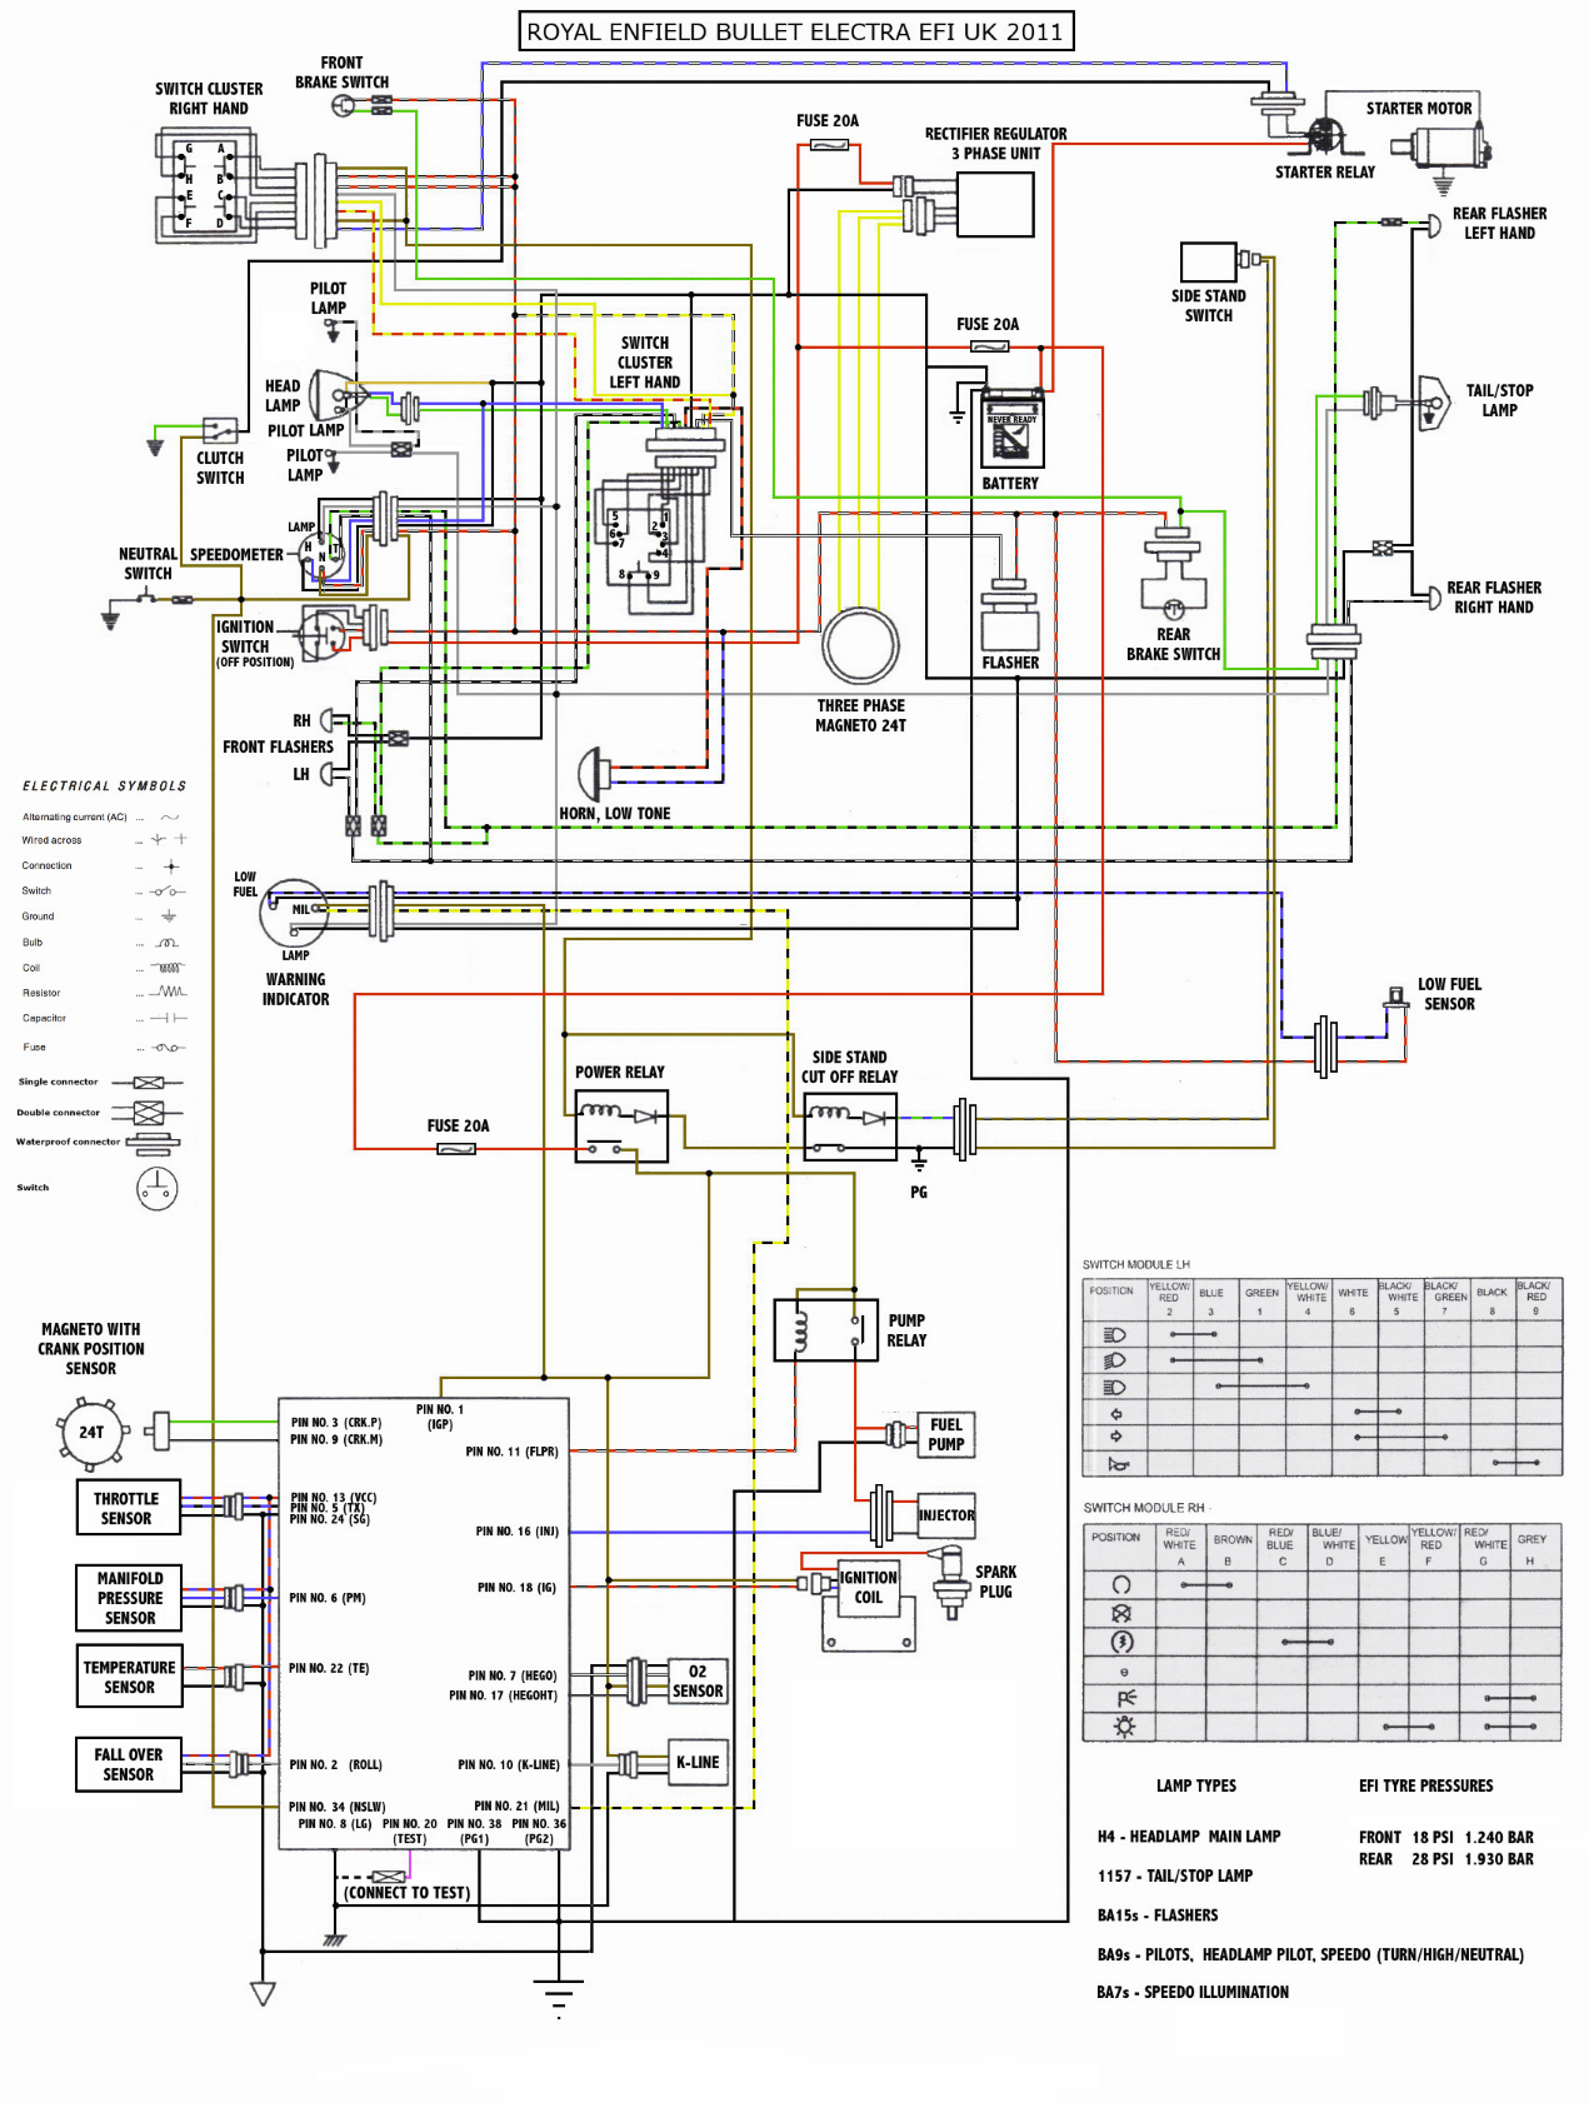 royal enfield wiring diagram for horn wiring diagram Royal Enfield Transmission Diagram royal enfield wiring diagram for horn